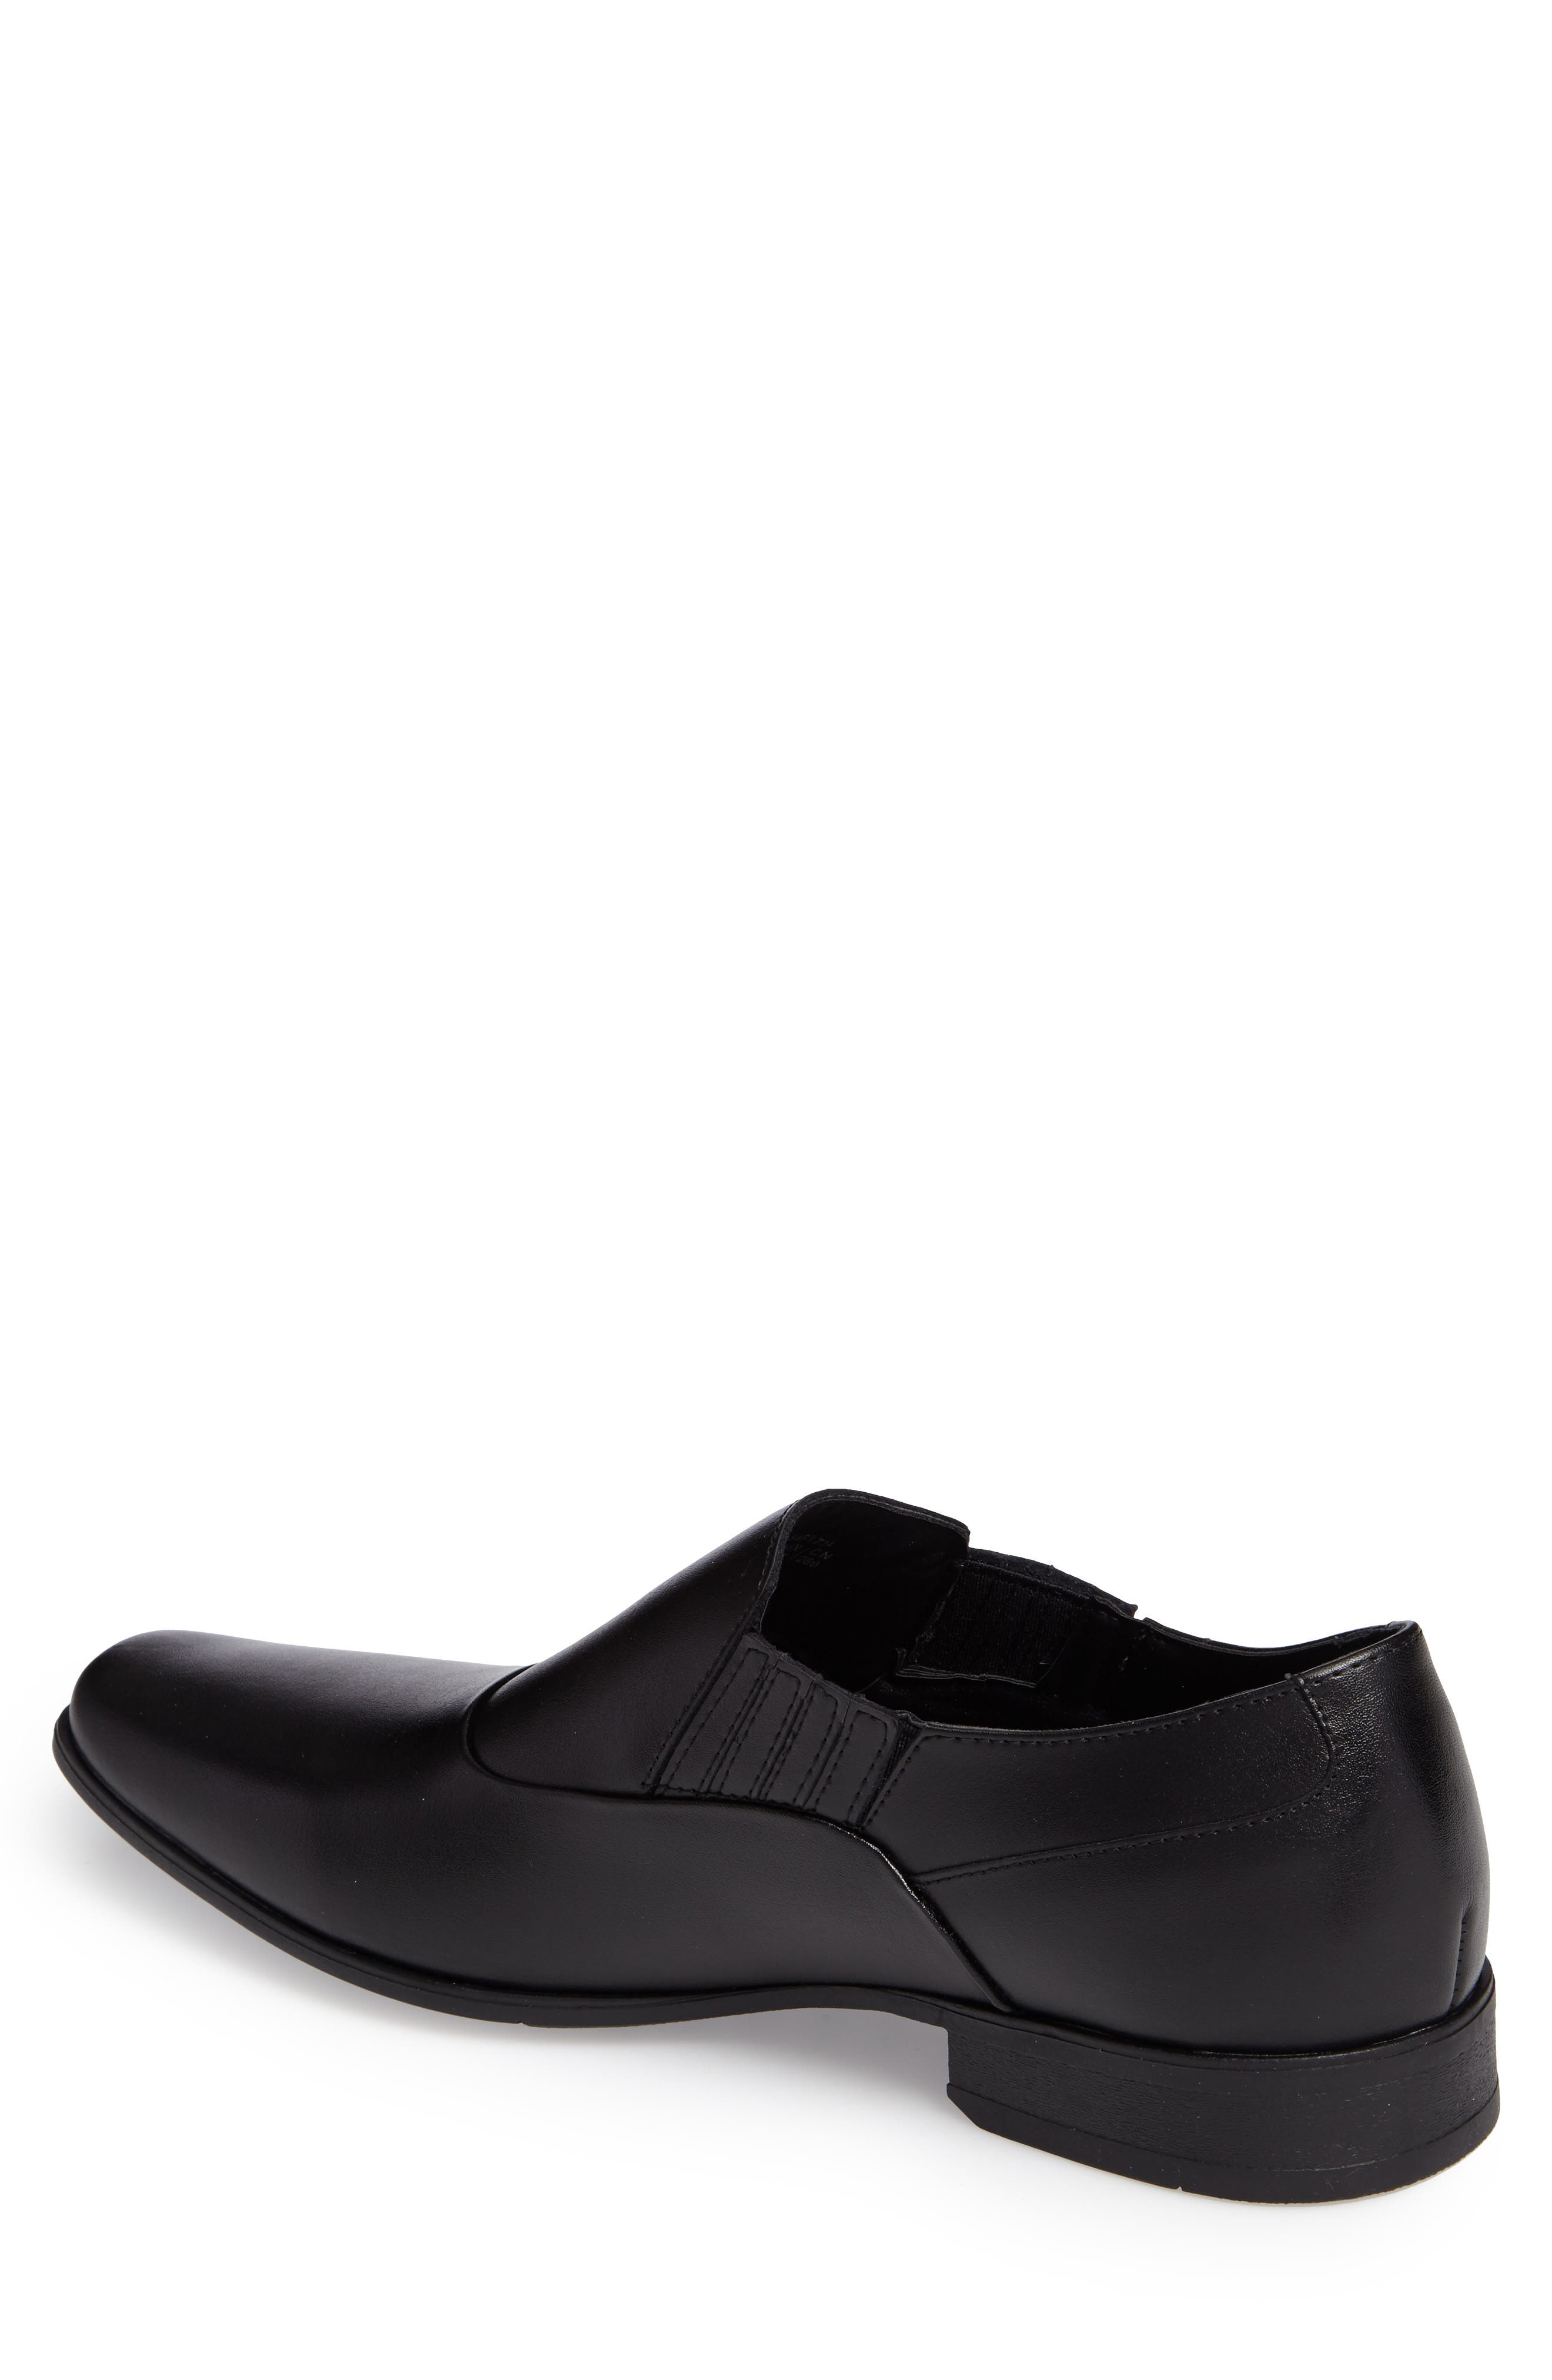 Alternate Image 2  - Calvin Klein Bartel Square-Toe Venetian Loafer (Men)